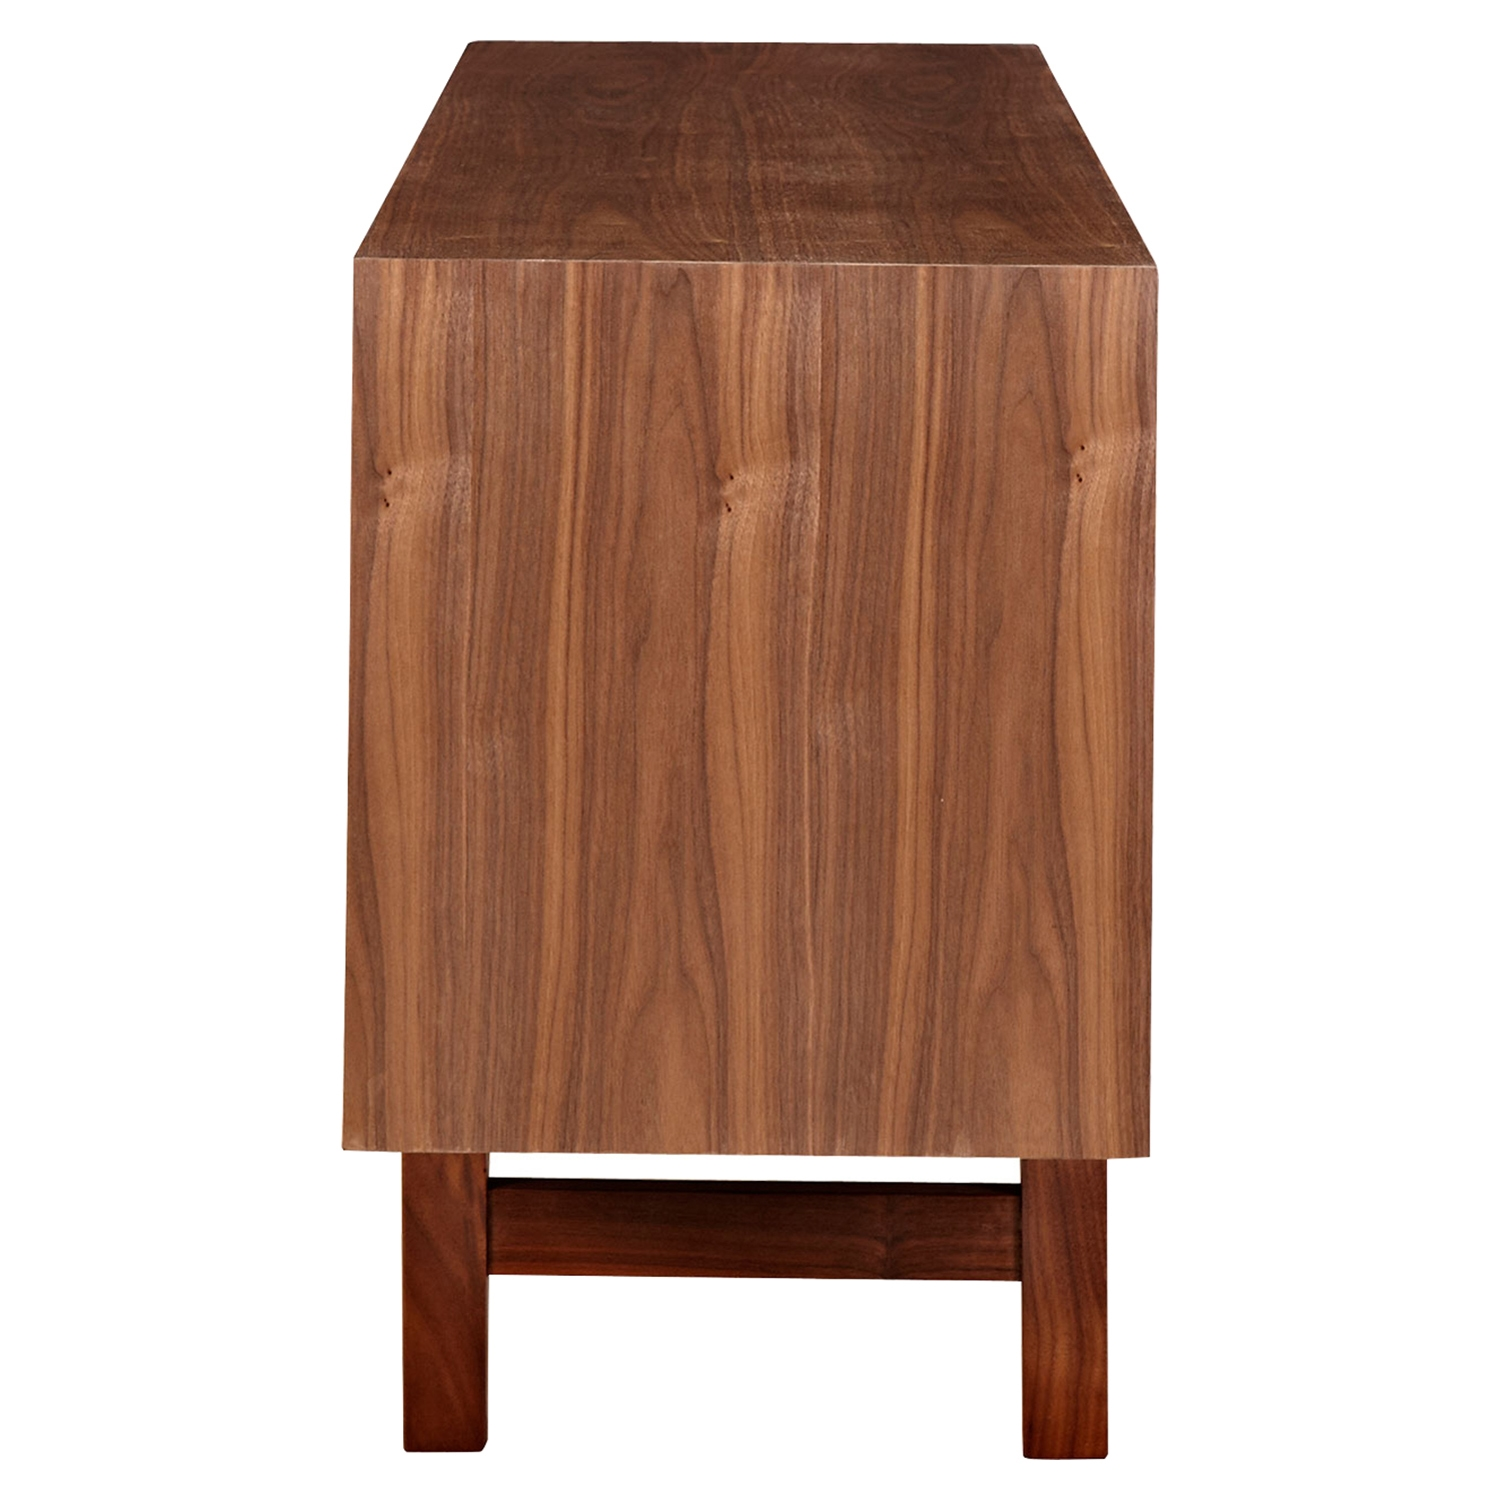 Kelda Sideboard - Walnut and Gray - NYEK-224417